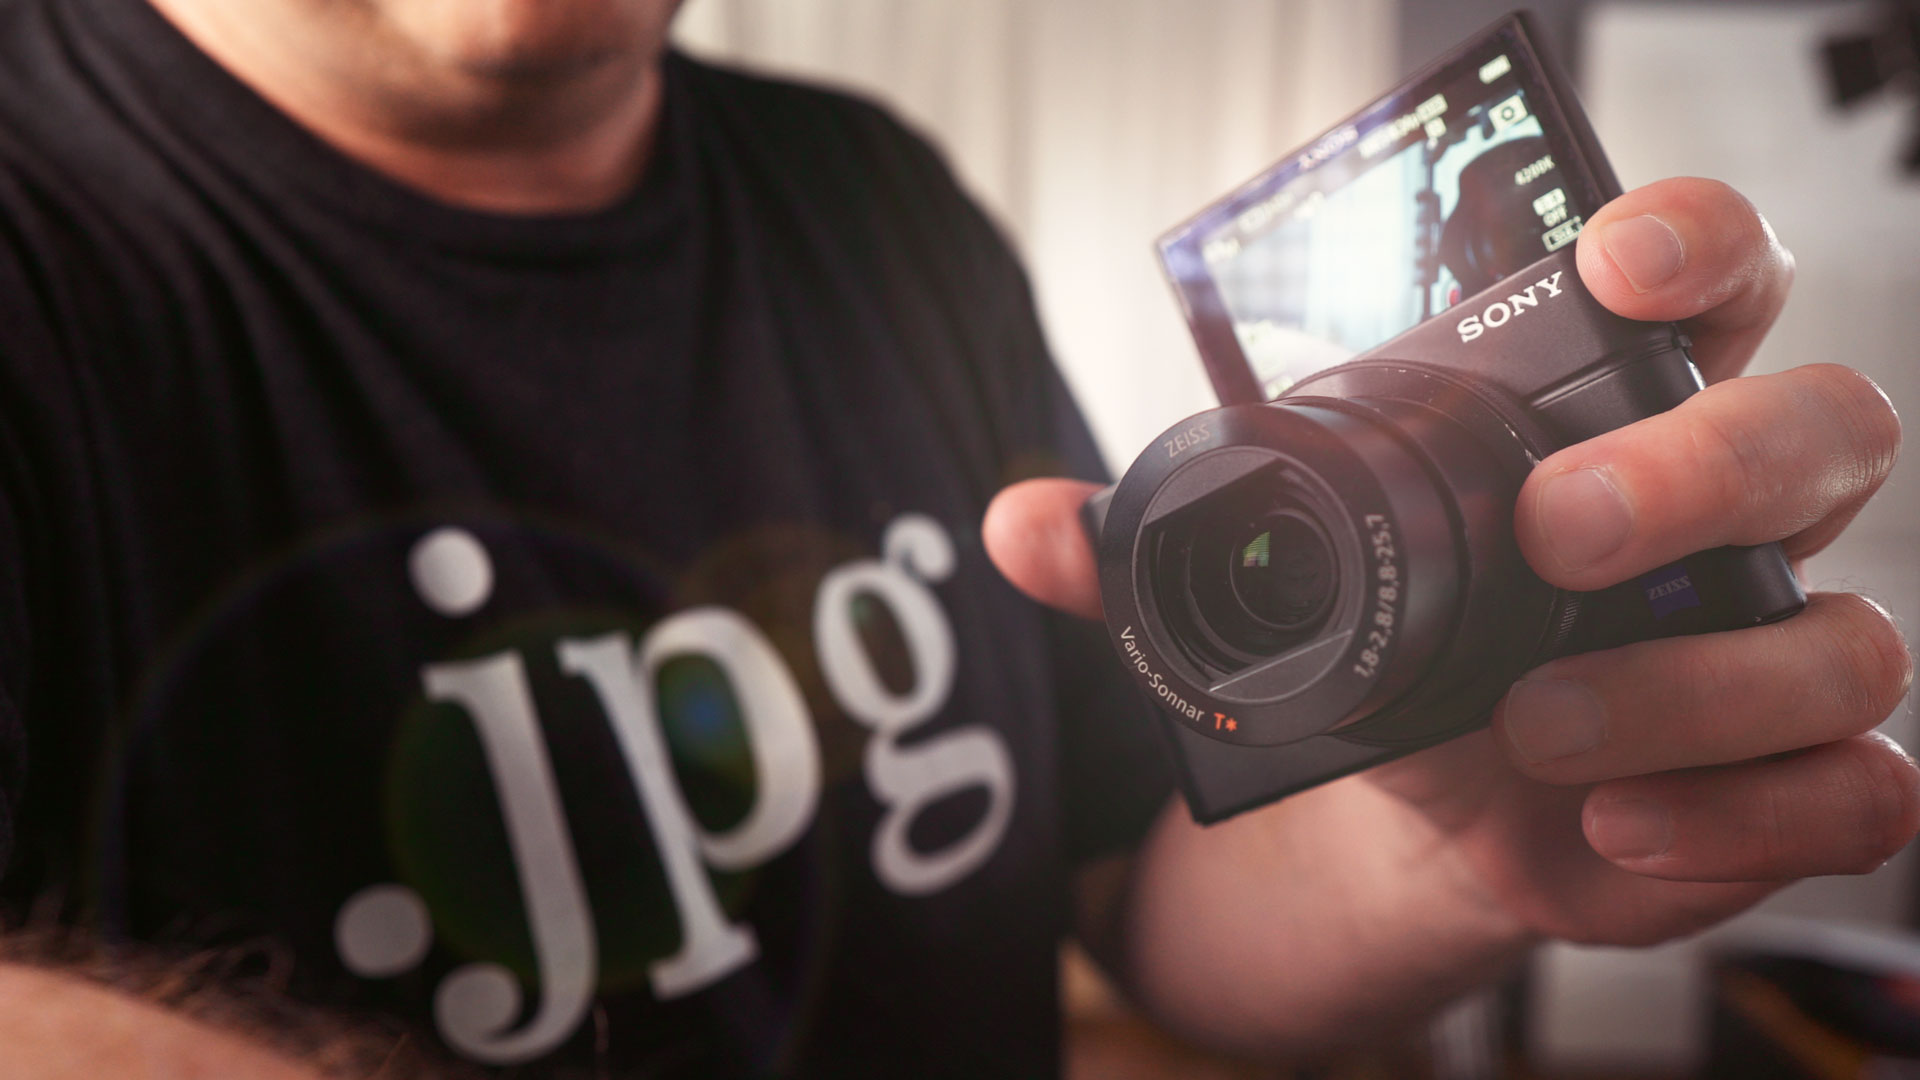 The Sony RX100 VI is going to be AWESOME!